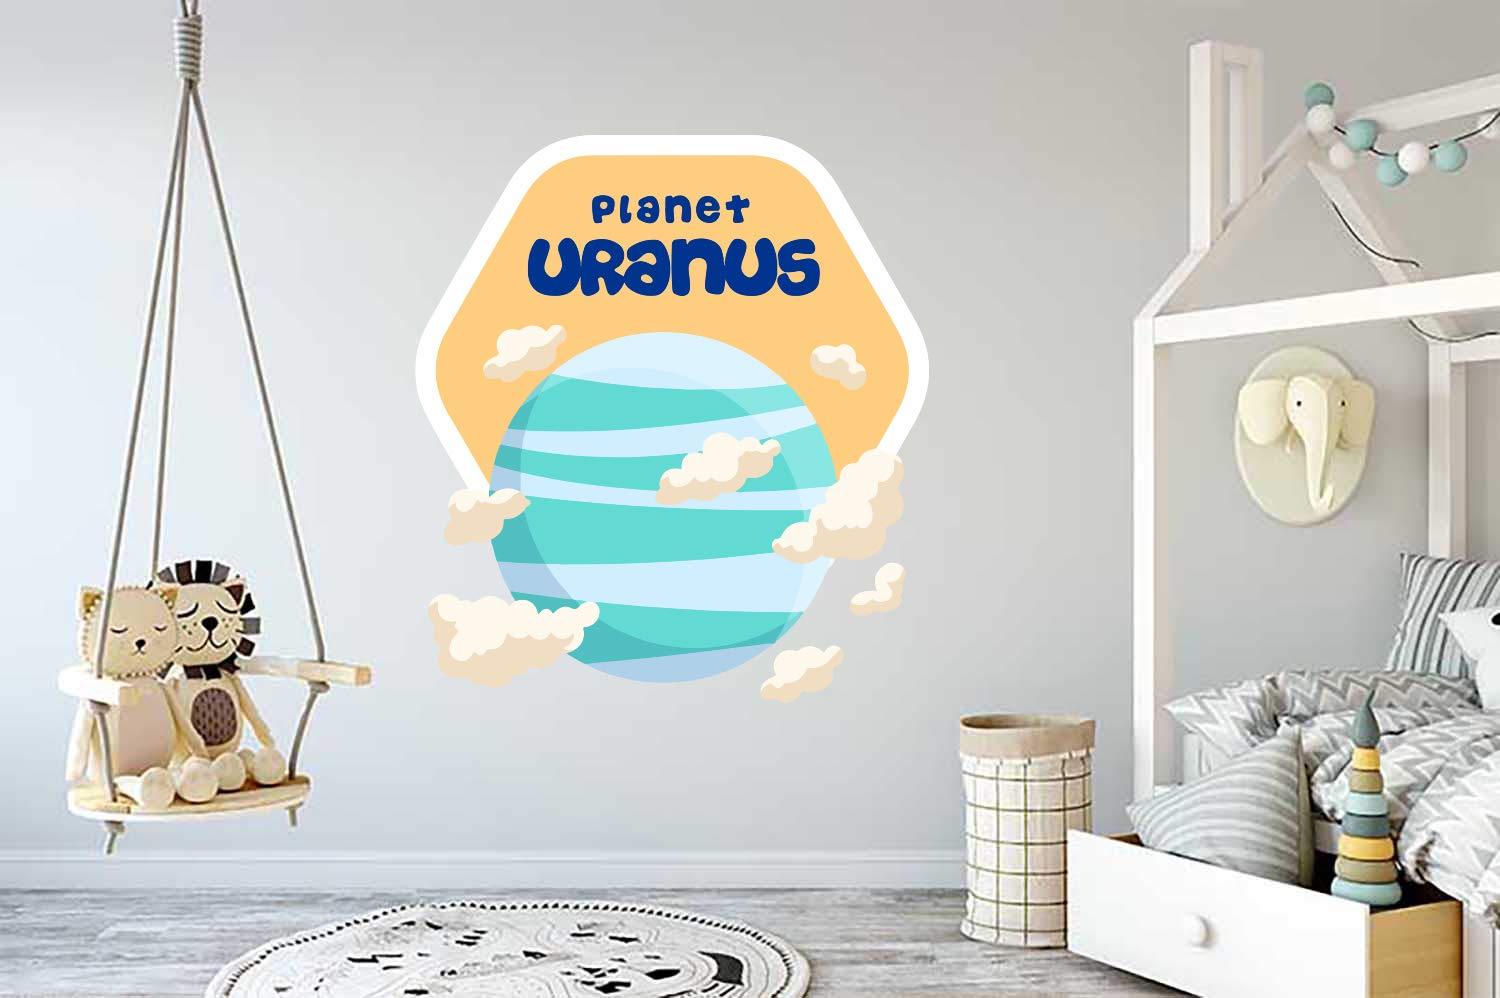 Uranus Planet Space Wall Vinyl We OFFer at cheap prices Sticker Mural Car OFFicial Decal Decor Art